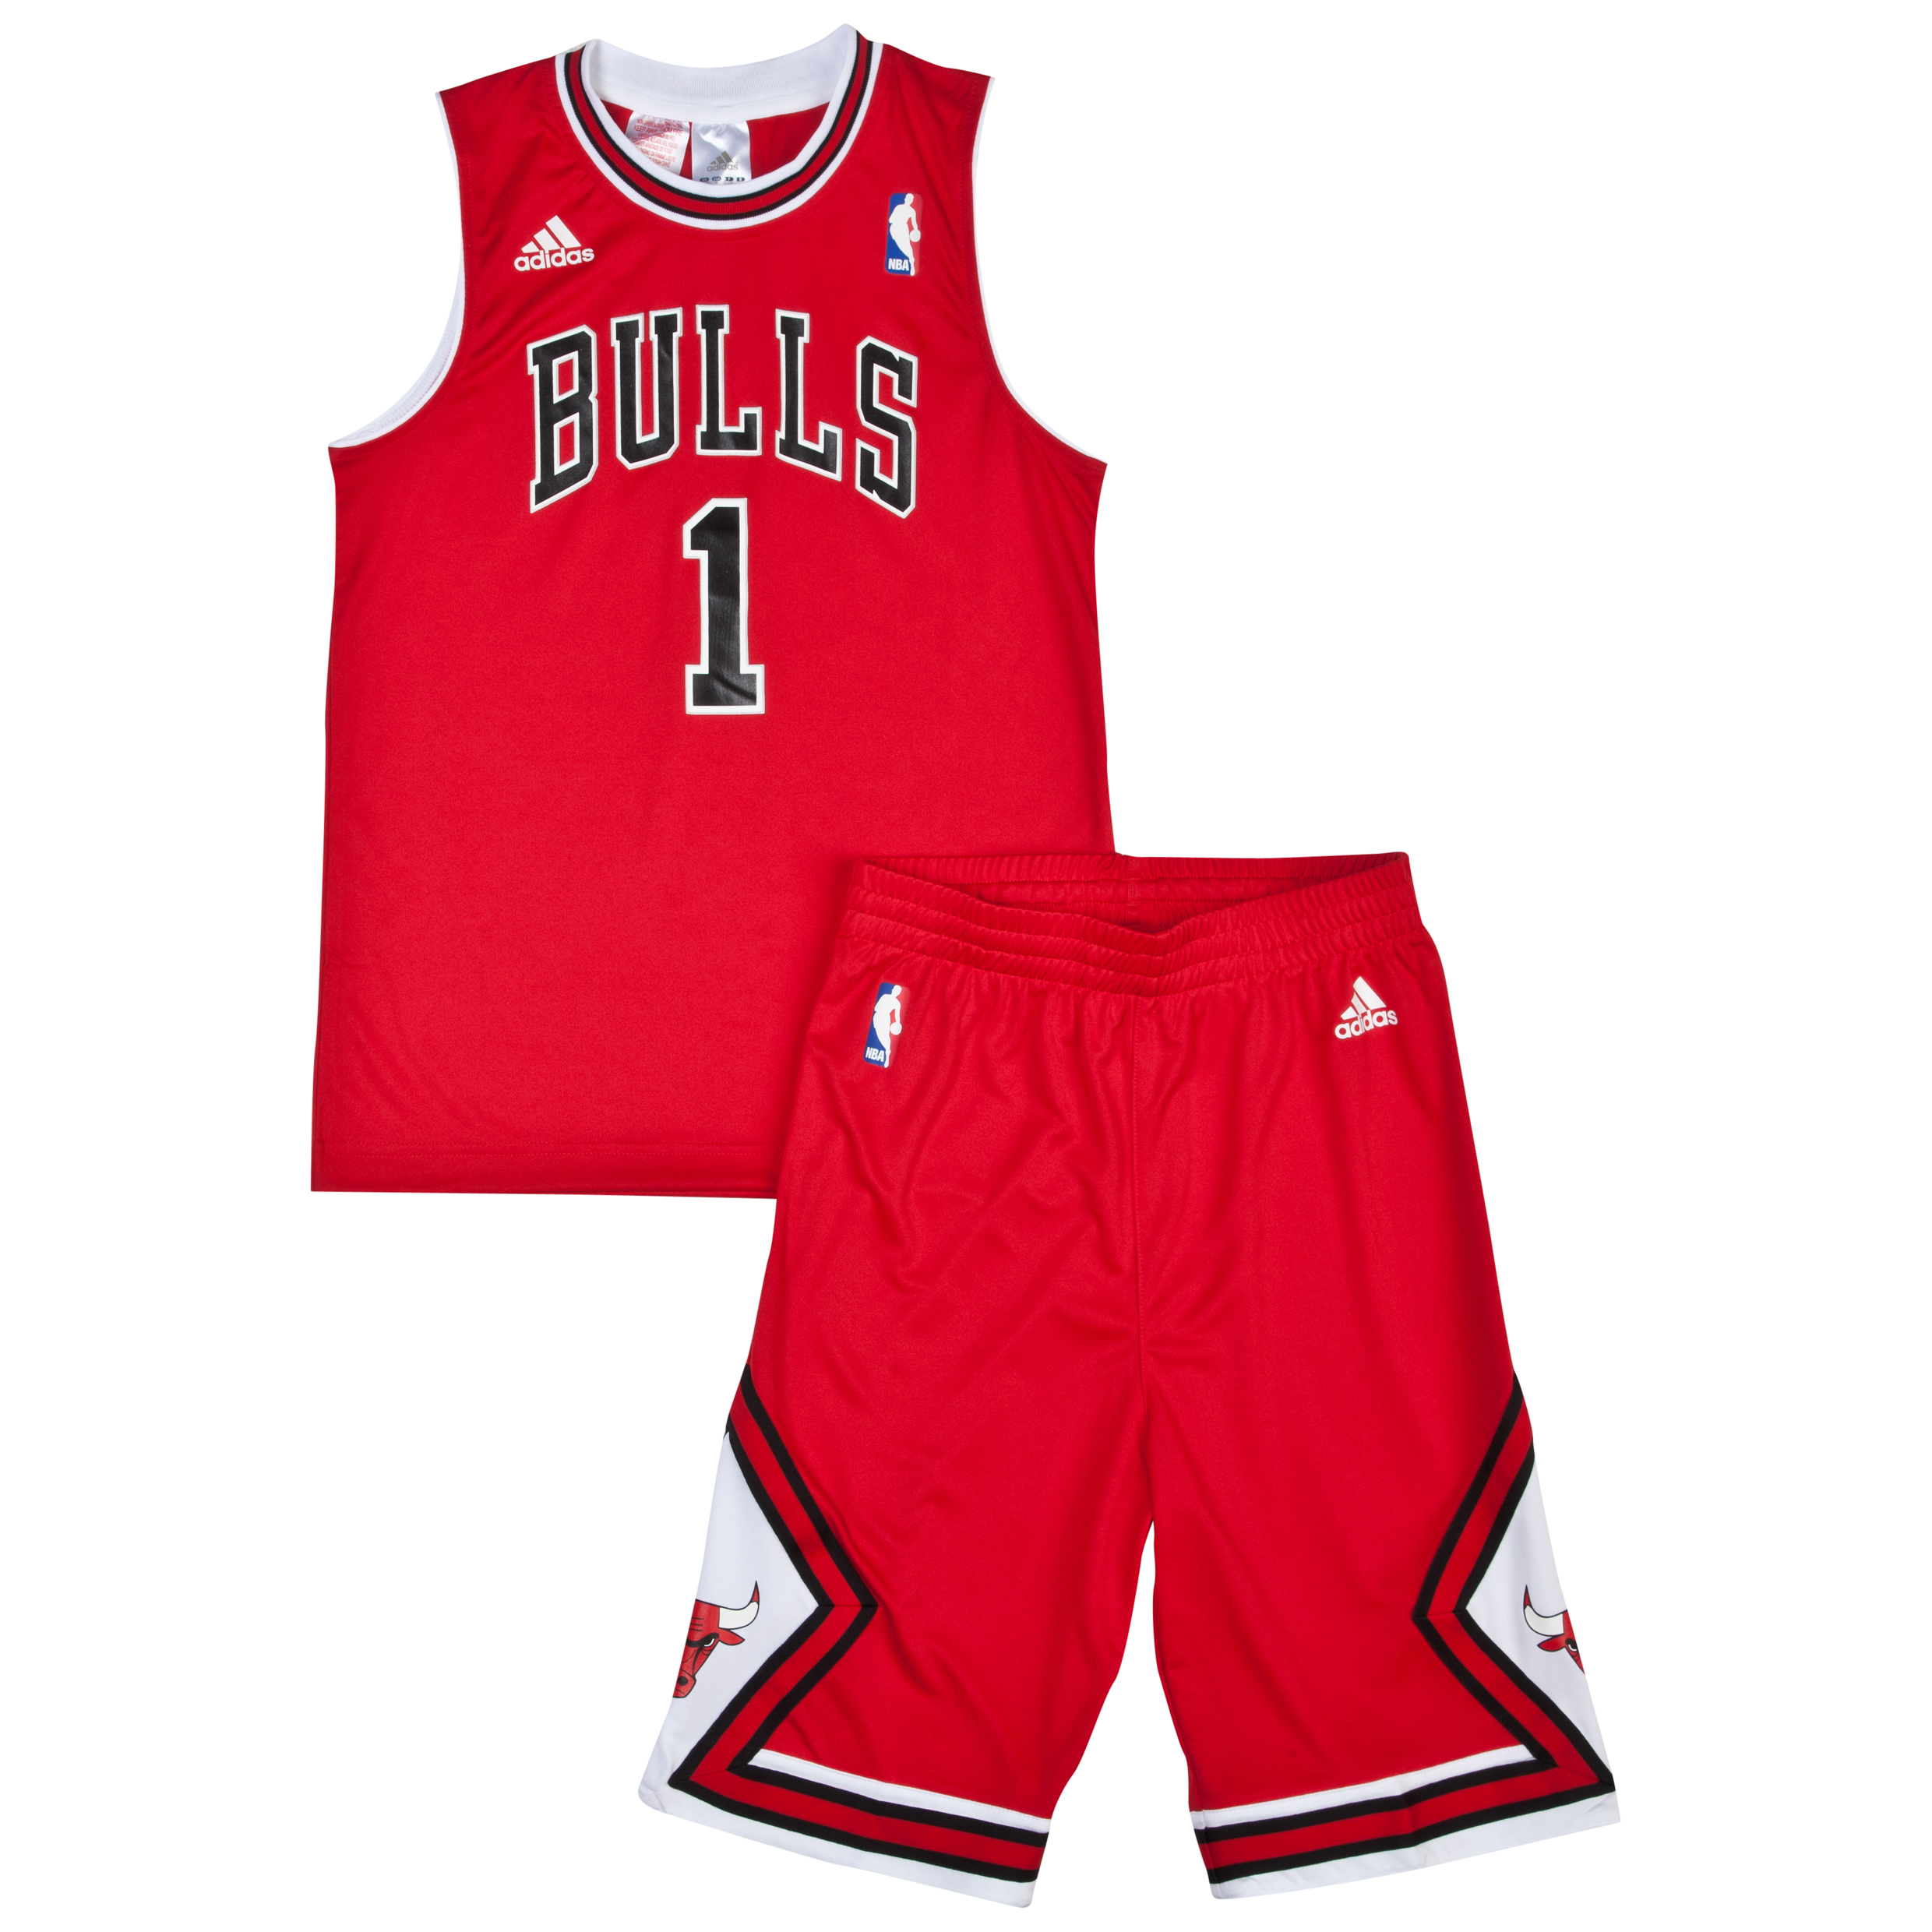 Chicago Bulls Road Replica Jersey and Shorts - Derrick Rose - Junior